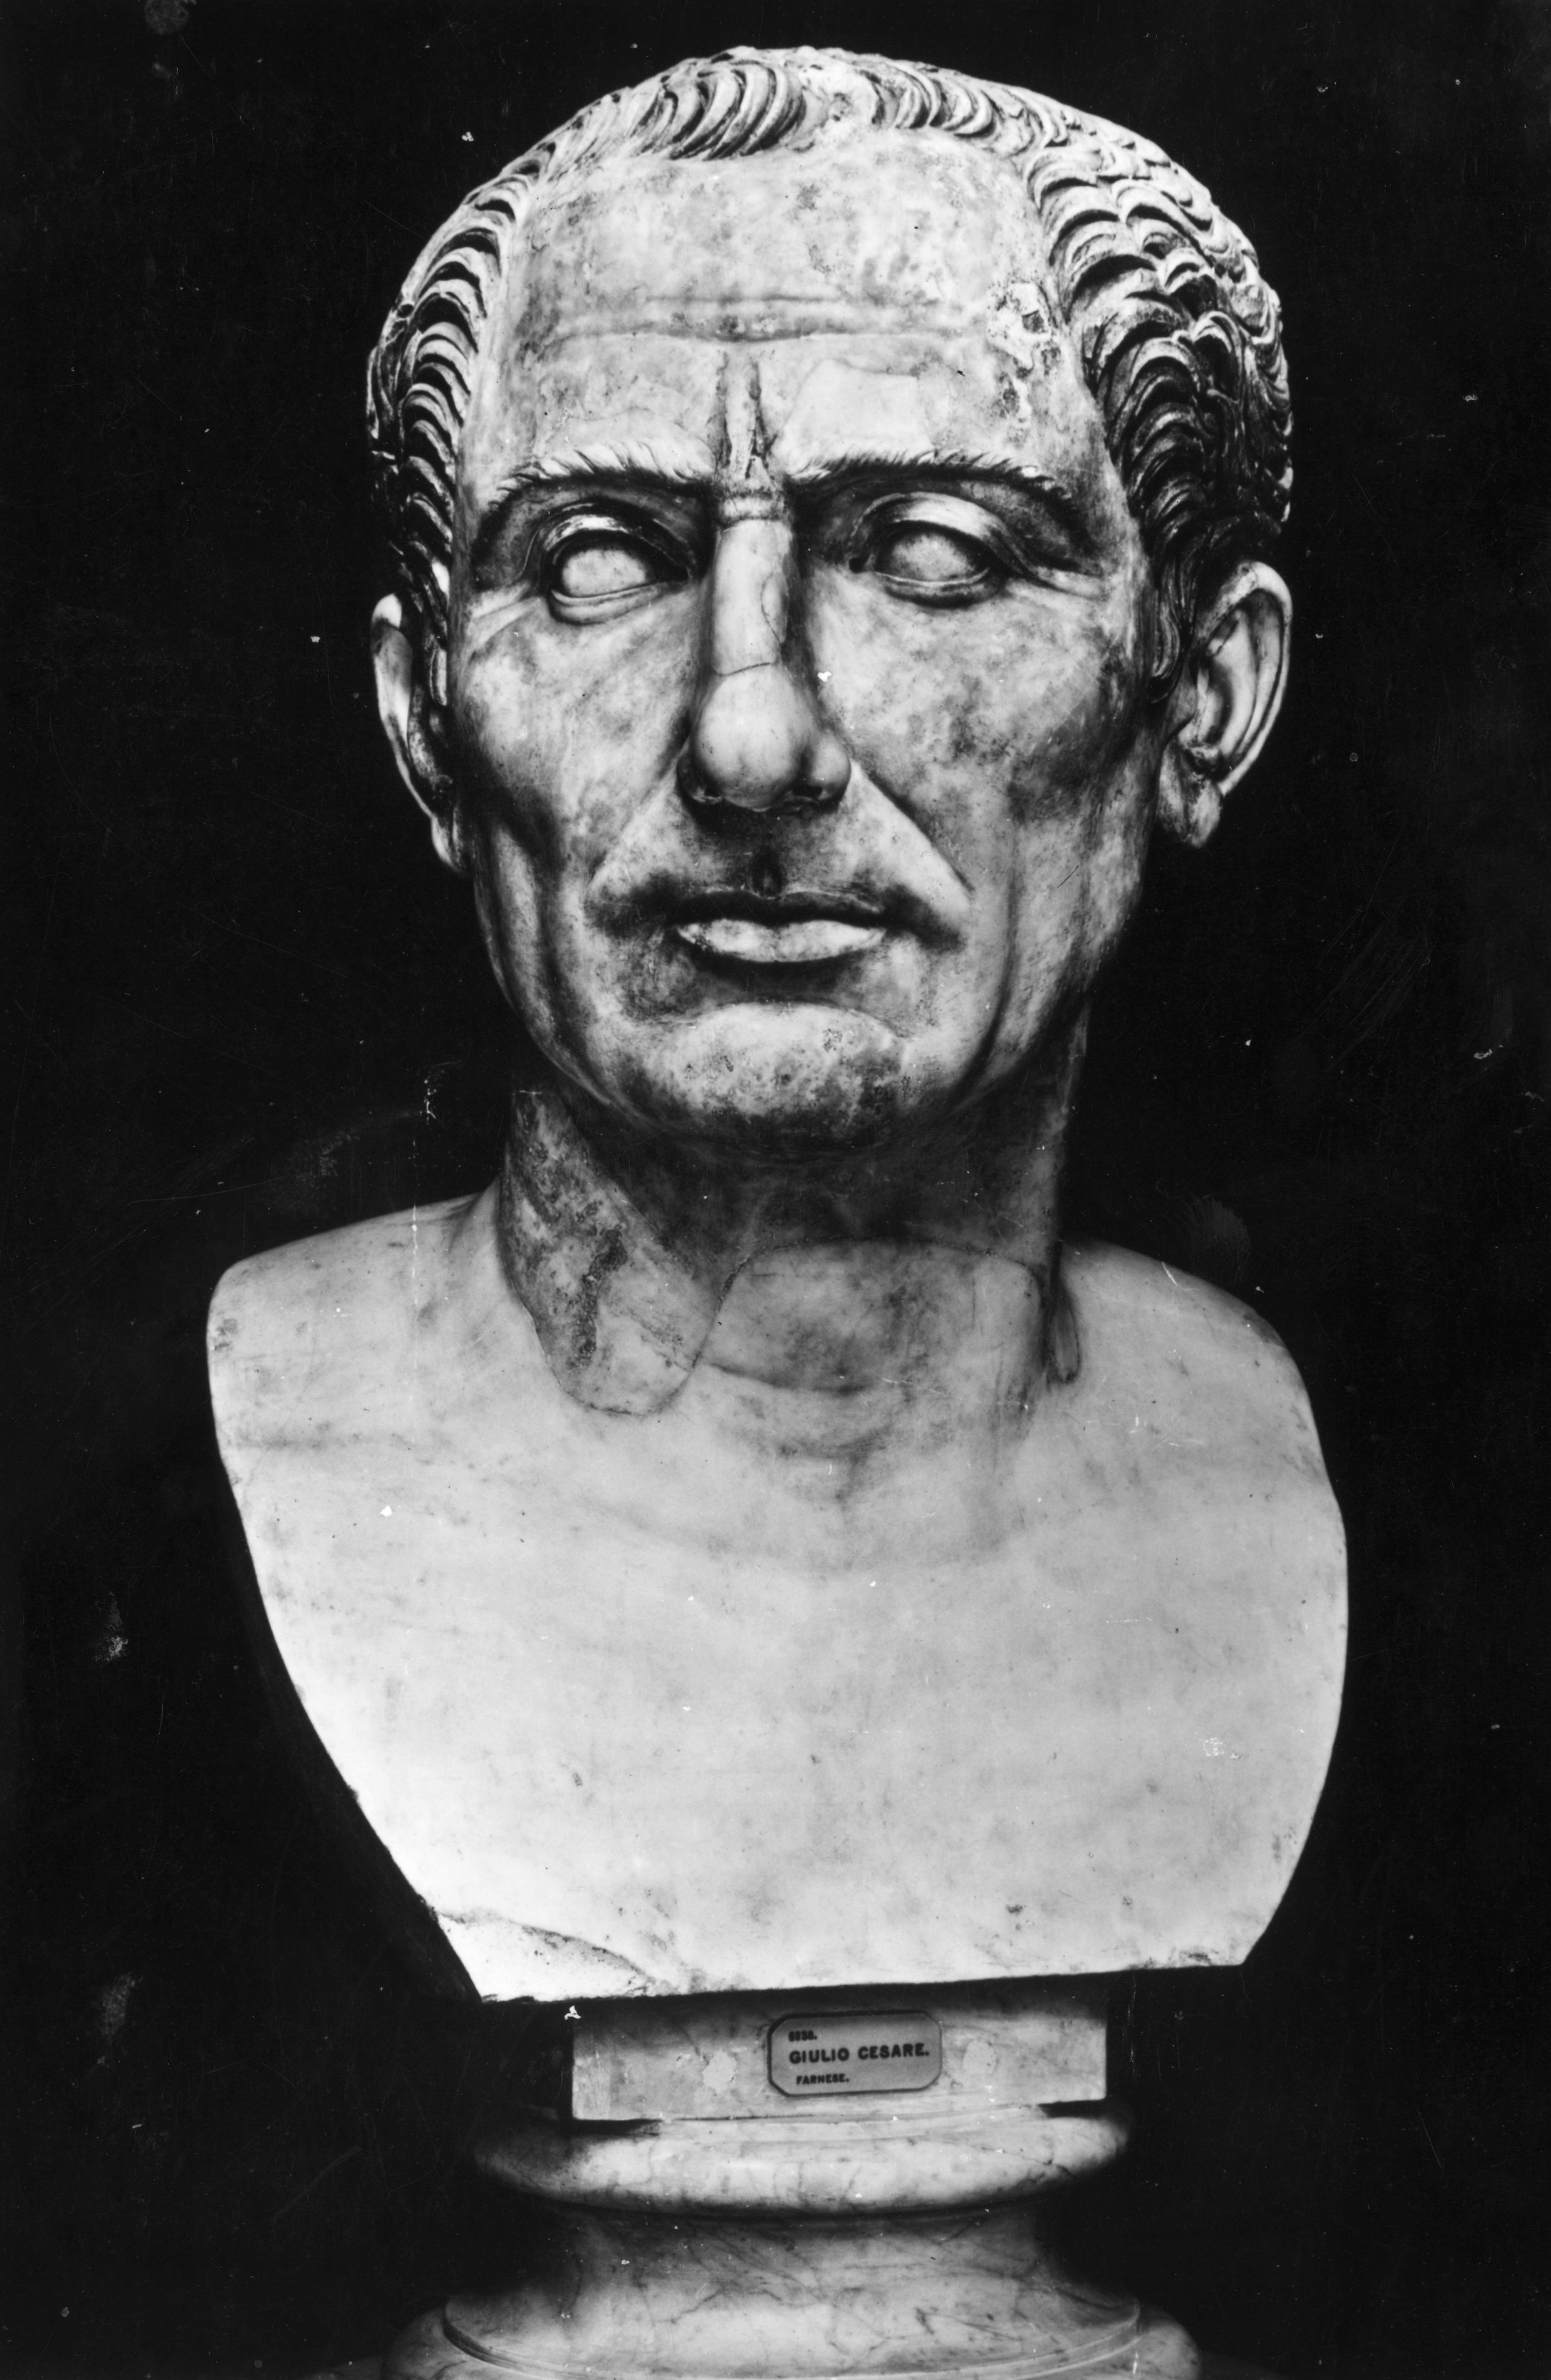 A bust of Julius Caesar. (Photo by Hulton Archive/Getty Images)